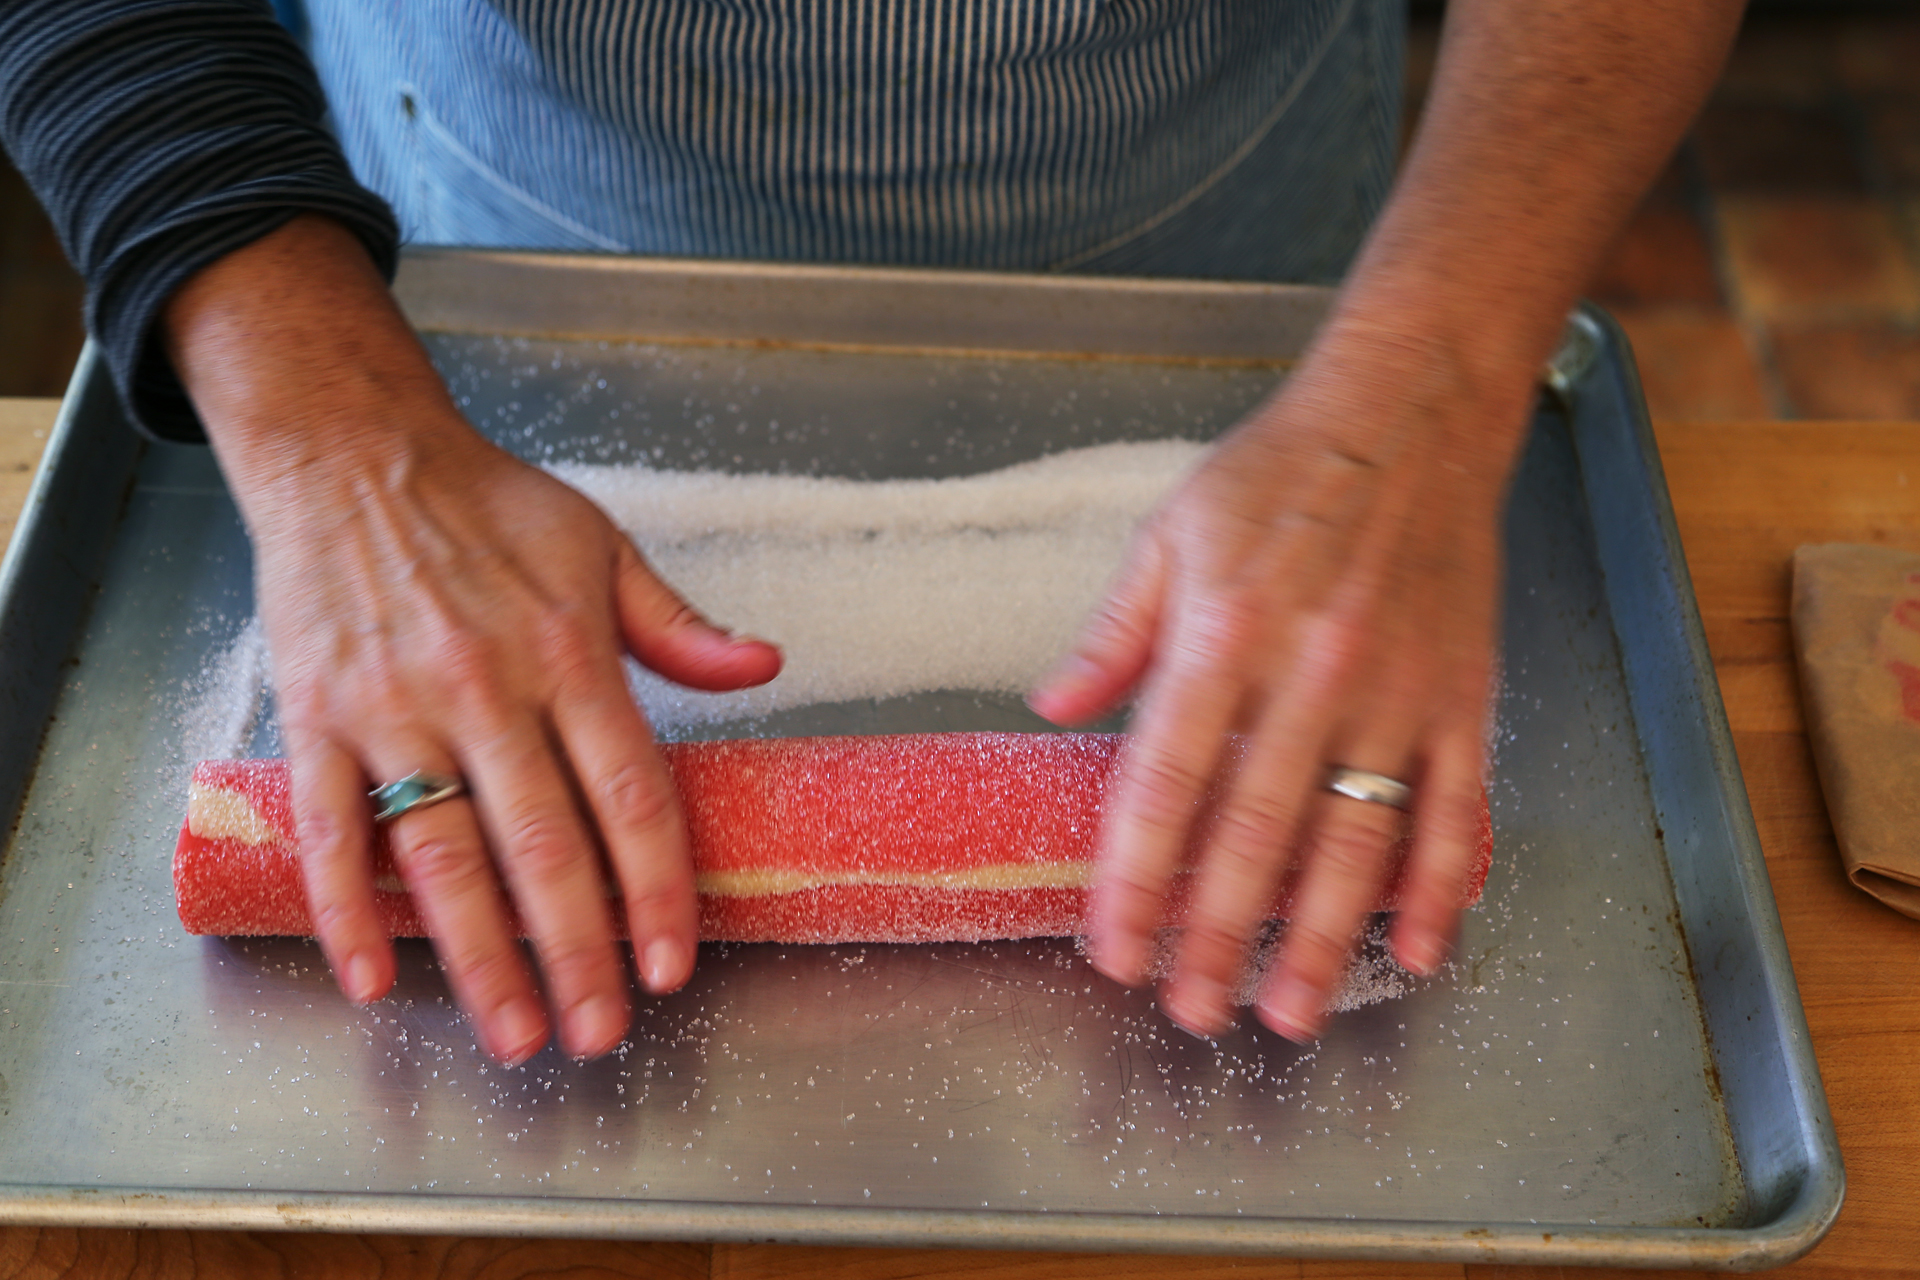 Roll the log in the sparkle sugar, pressing slightly to make sure it adheres to the dough.